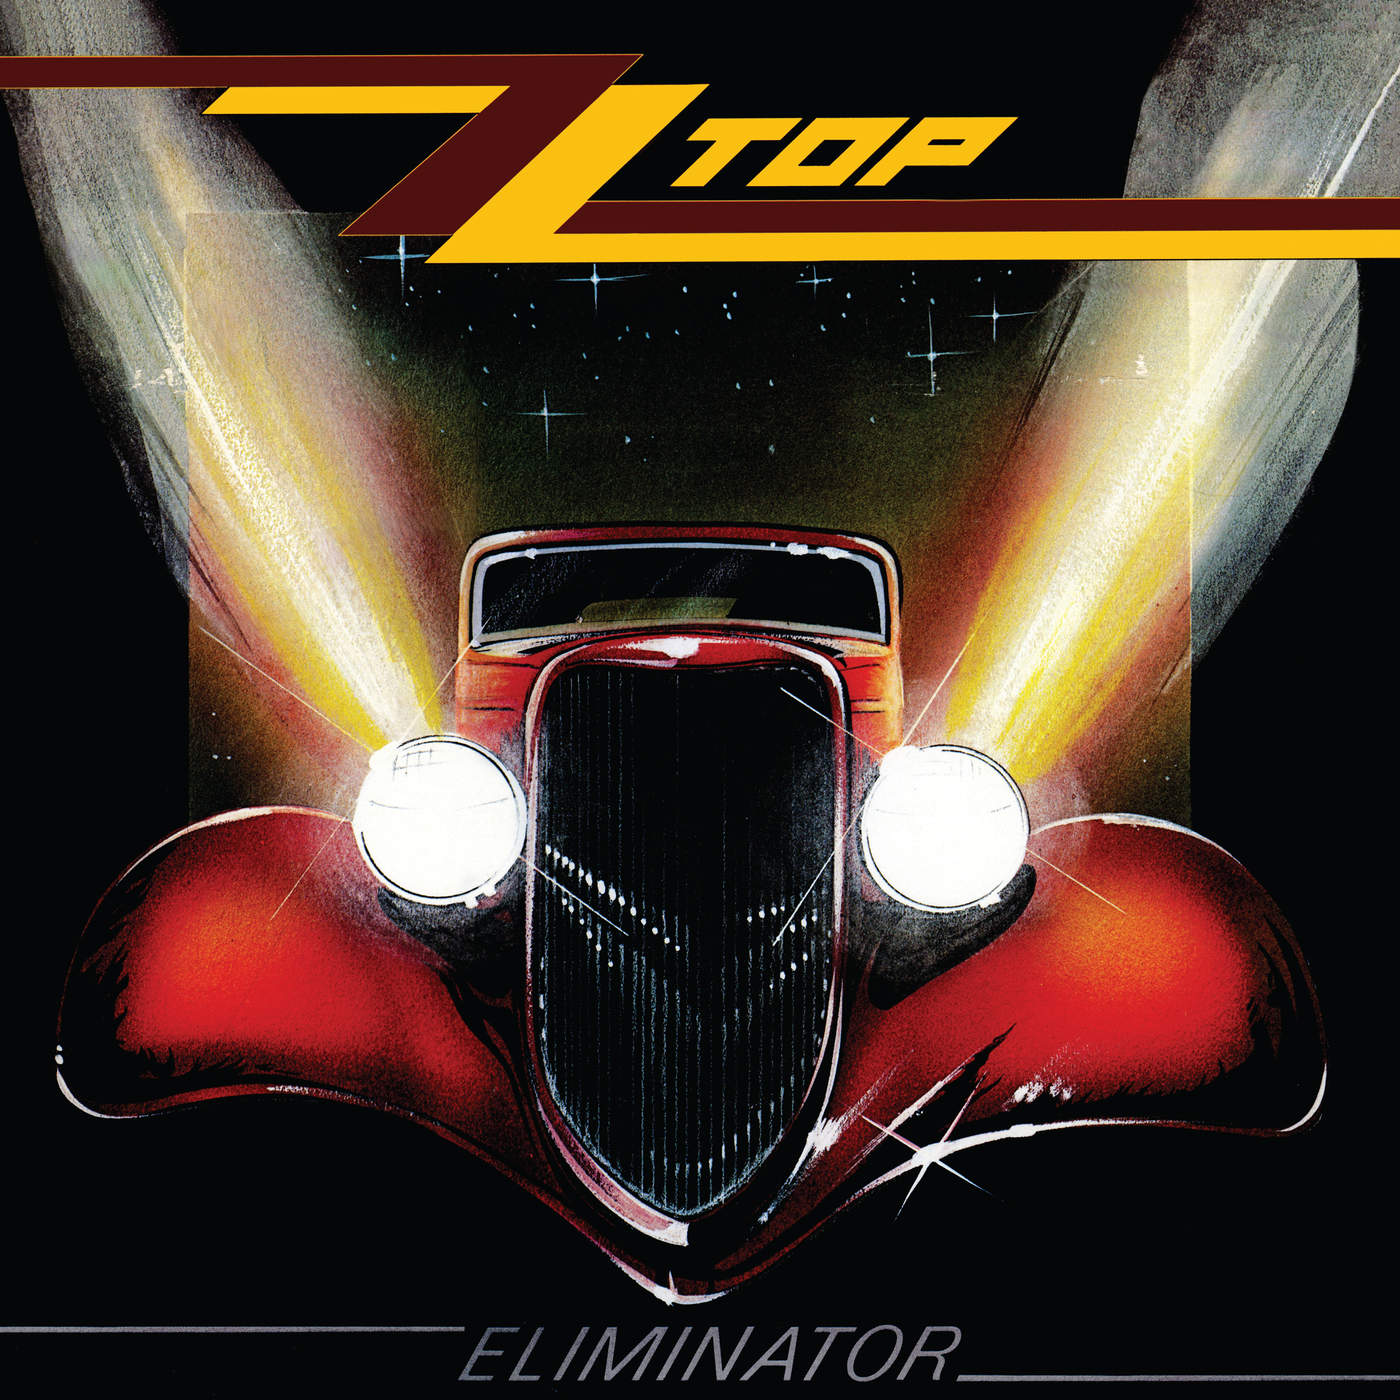 Gimme All Your Lovin' - ZZ Top